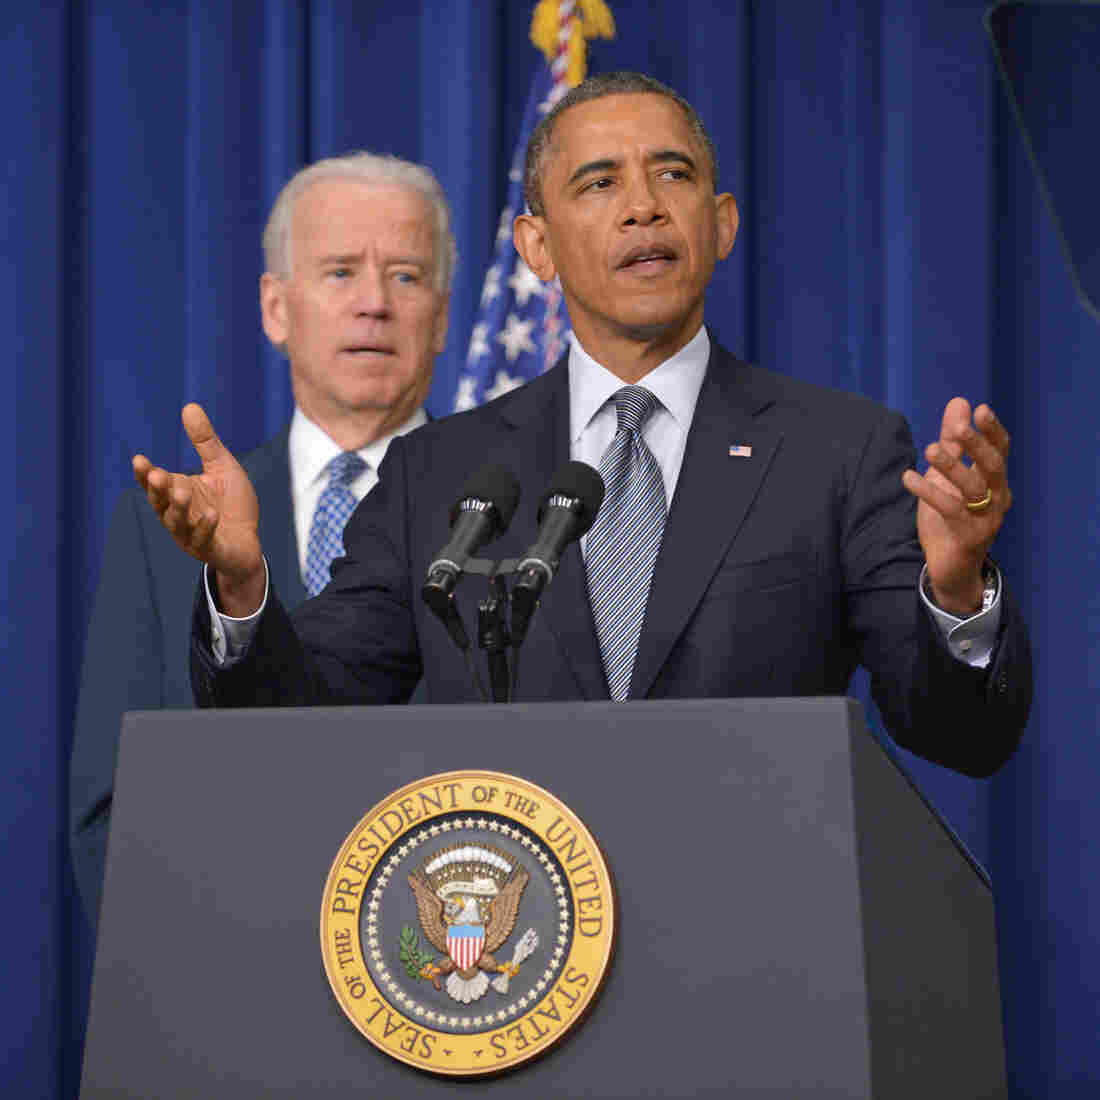 President Obama at the White House today, with Vice President Biden in the background.